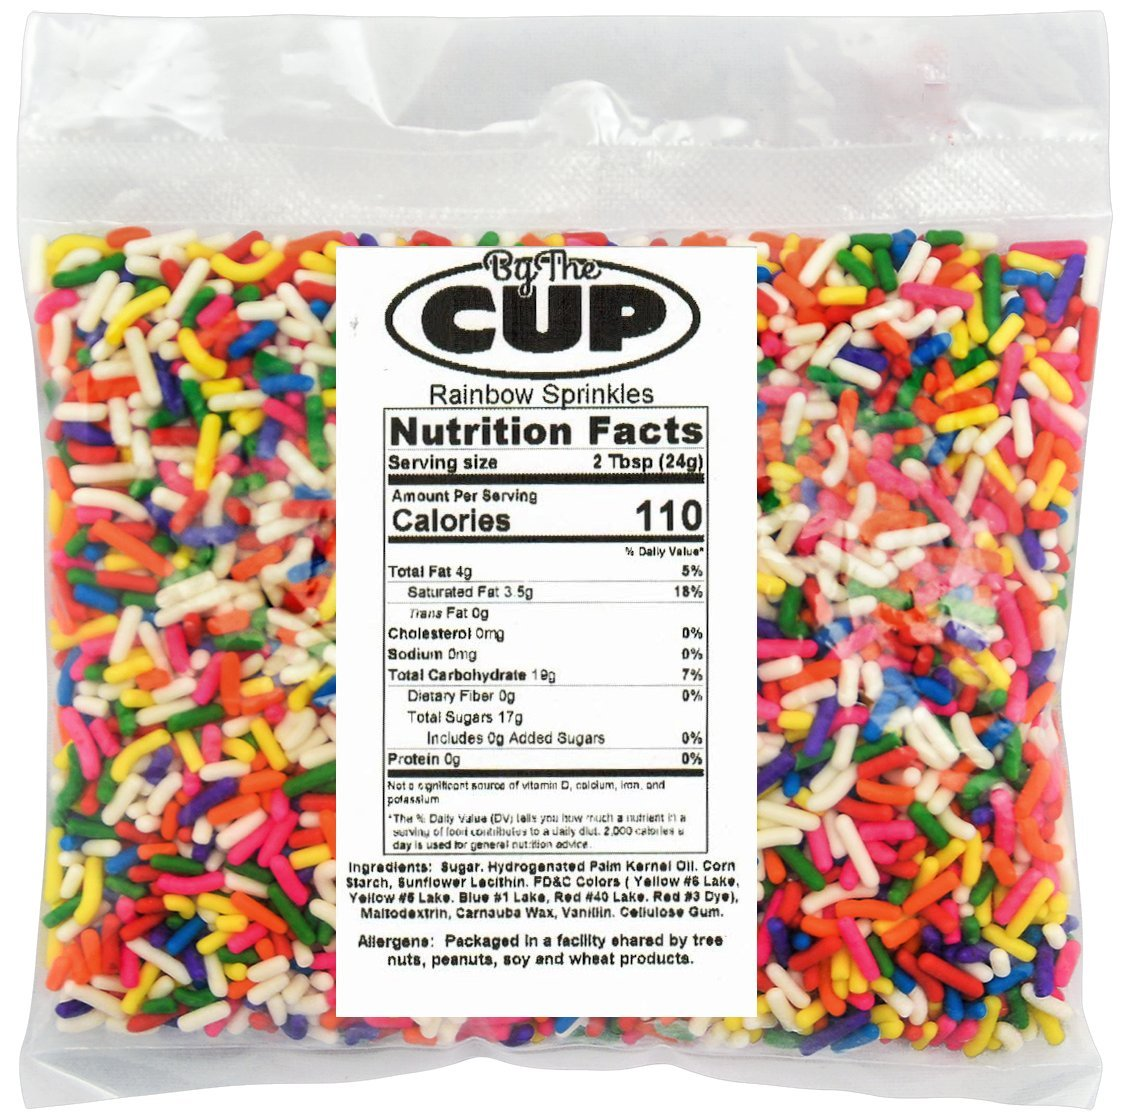 Dole Soft Serve Mix - Mango Dole Whip, Lactose-Free Soft Serve Ice Cream Mix, 4.50 Pound Bag - with By The Cup Rainbow Sprinkles by By The Cup (Image #2)